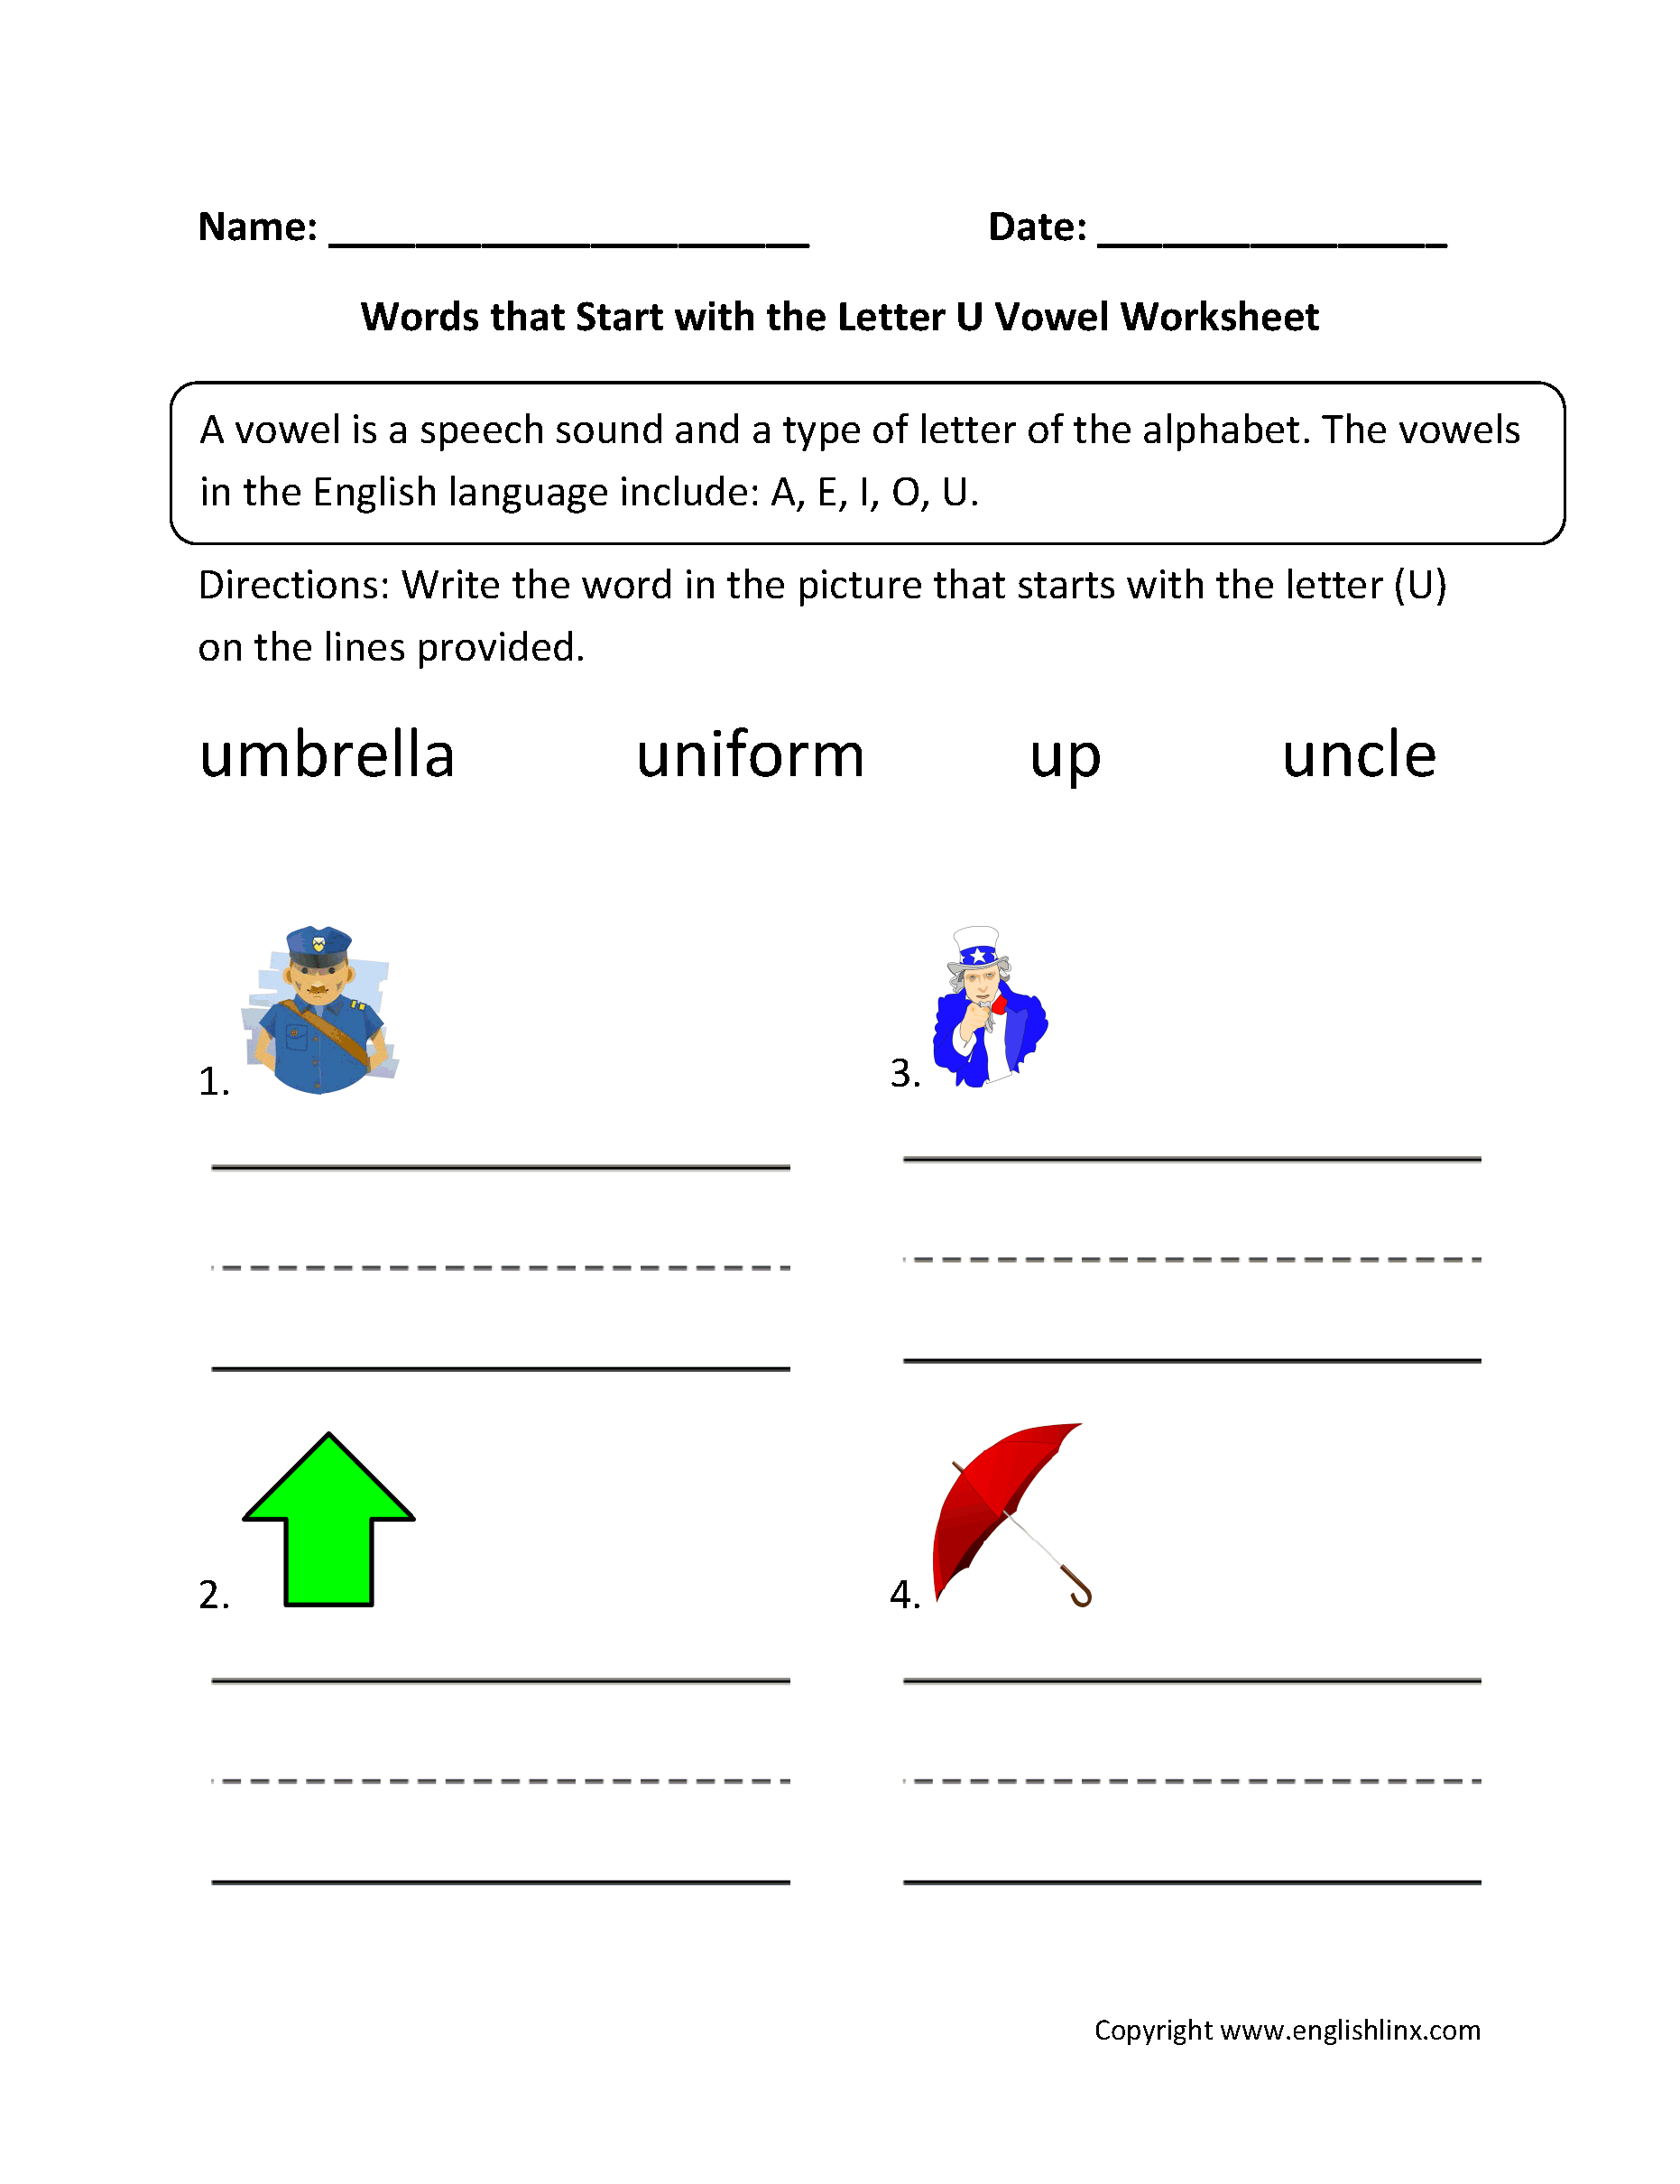 words that start with the letter u vowel worksheets general vowel worksheets 25739 | Words Start Letter U Vowel Worksheet